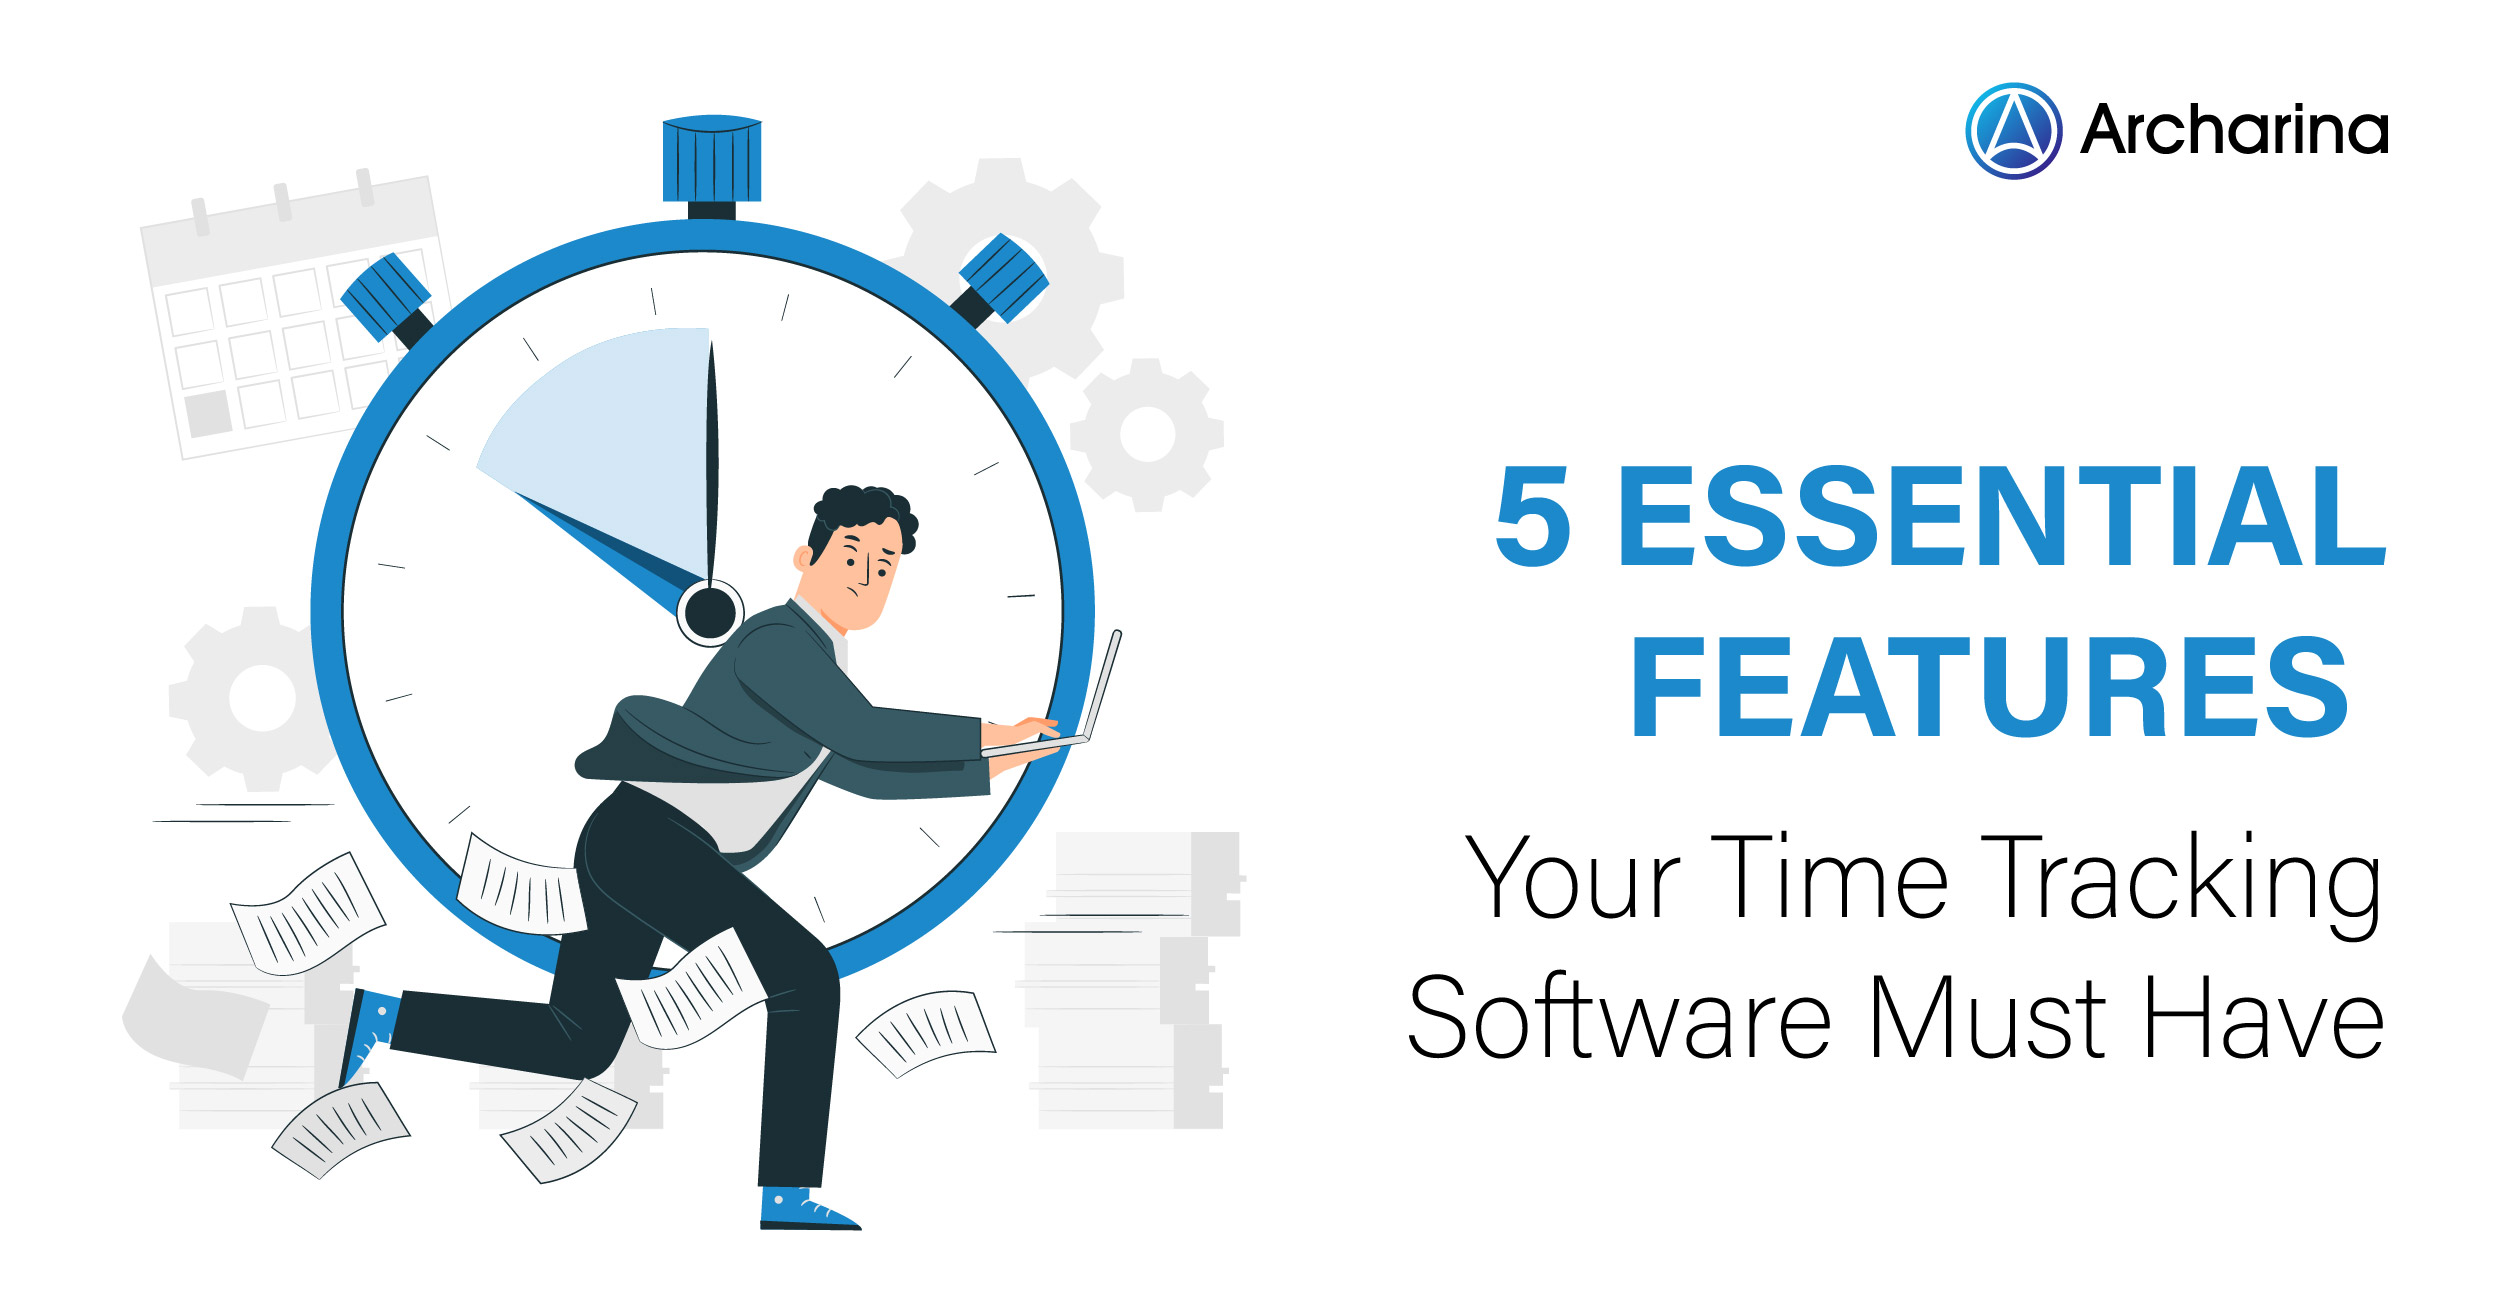 5 Essential Features Your Time Tracking Software Must Have